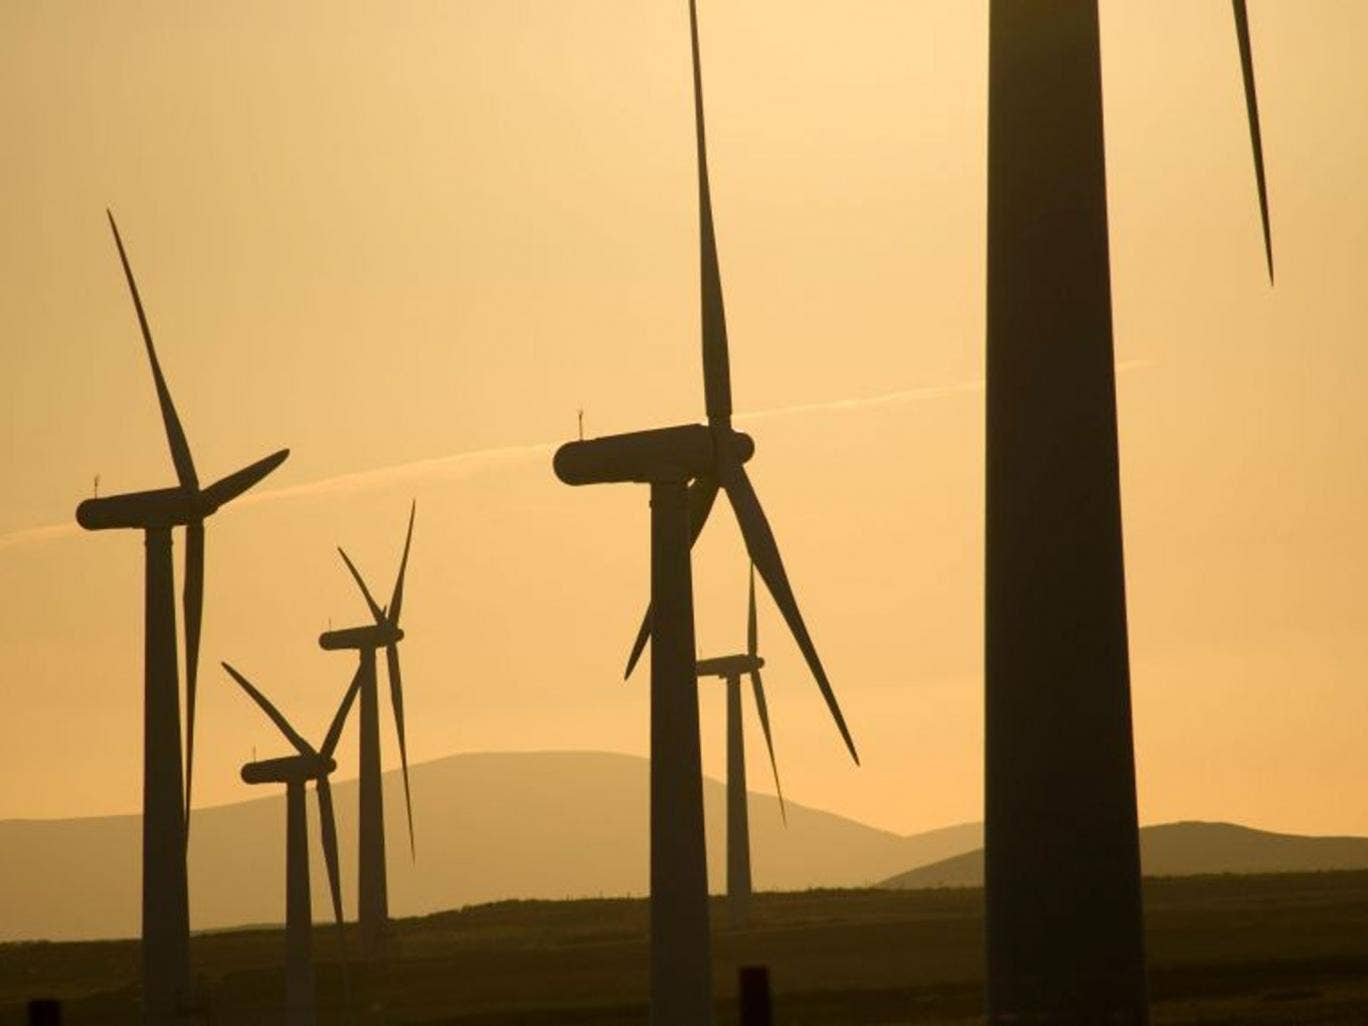 Green day: the answer for investors may be blowing in the wind as renewable energy projects look for fresh funds